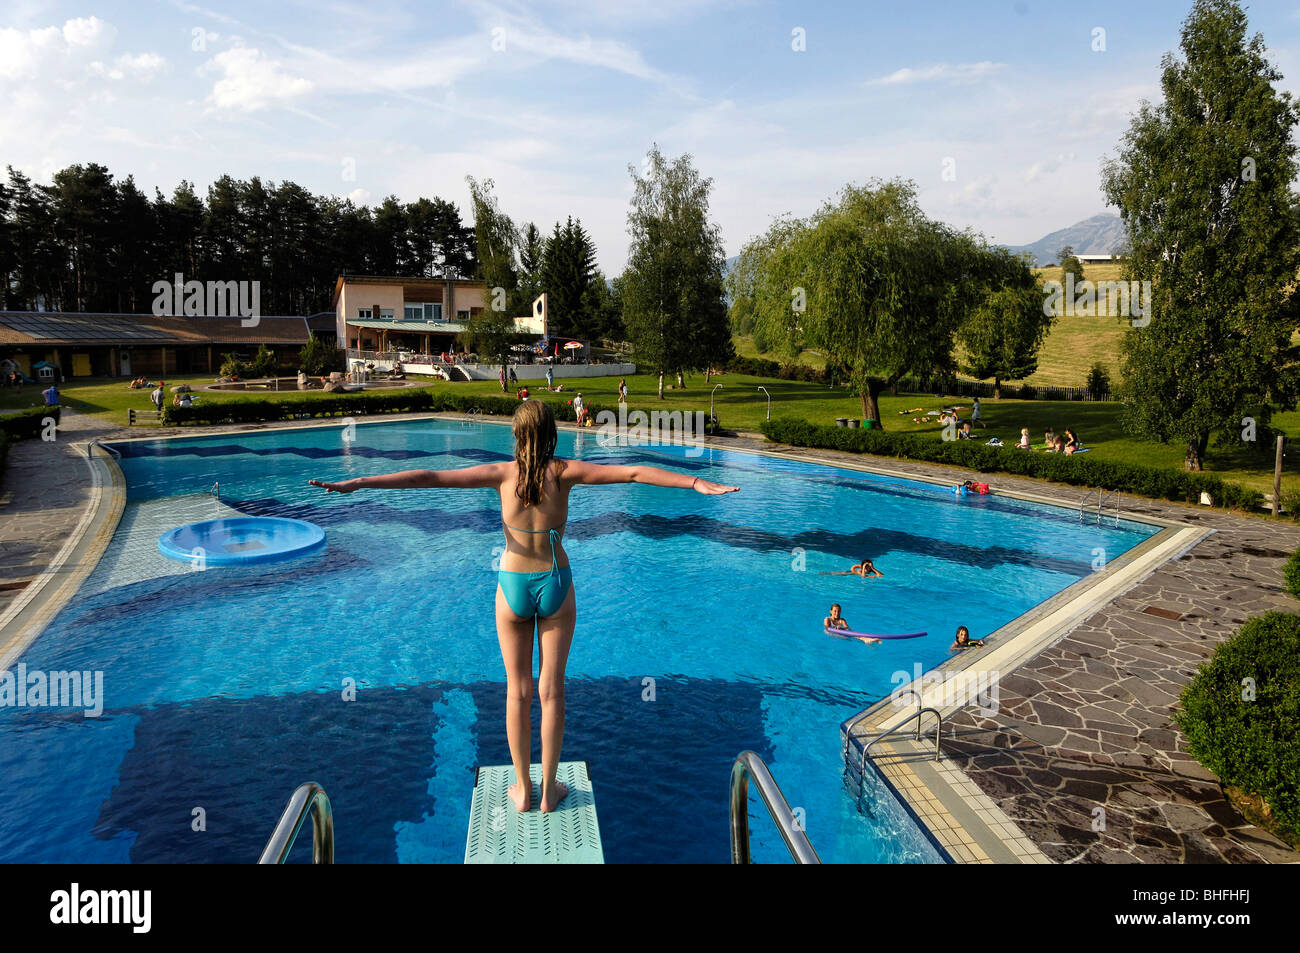 A Girl Standing On The Diving Board Of The Swimming Pool At Stock Photo Royalty Free Image